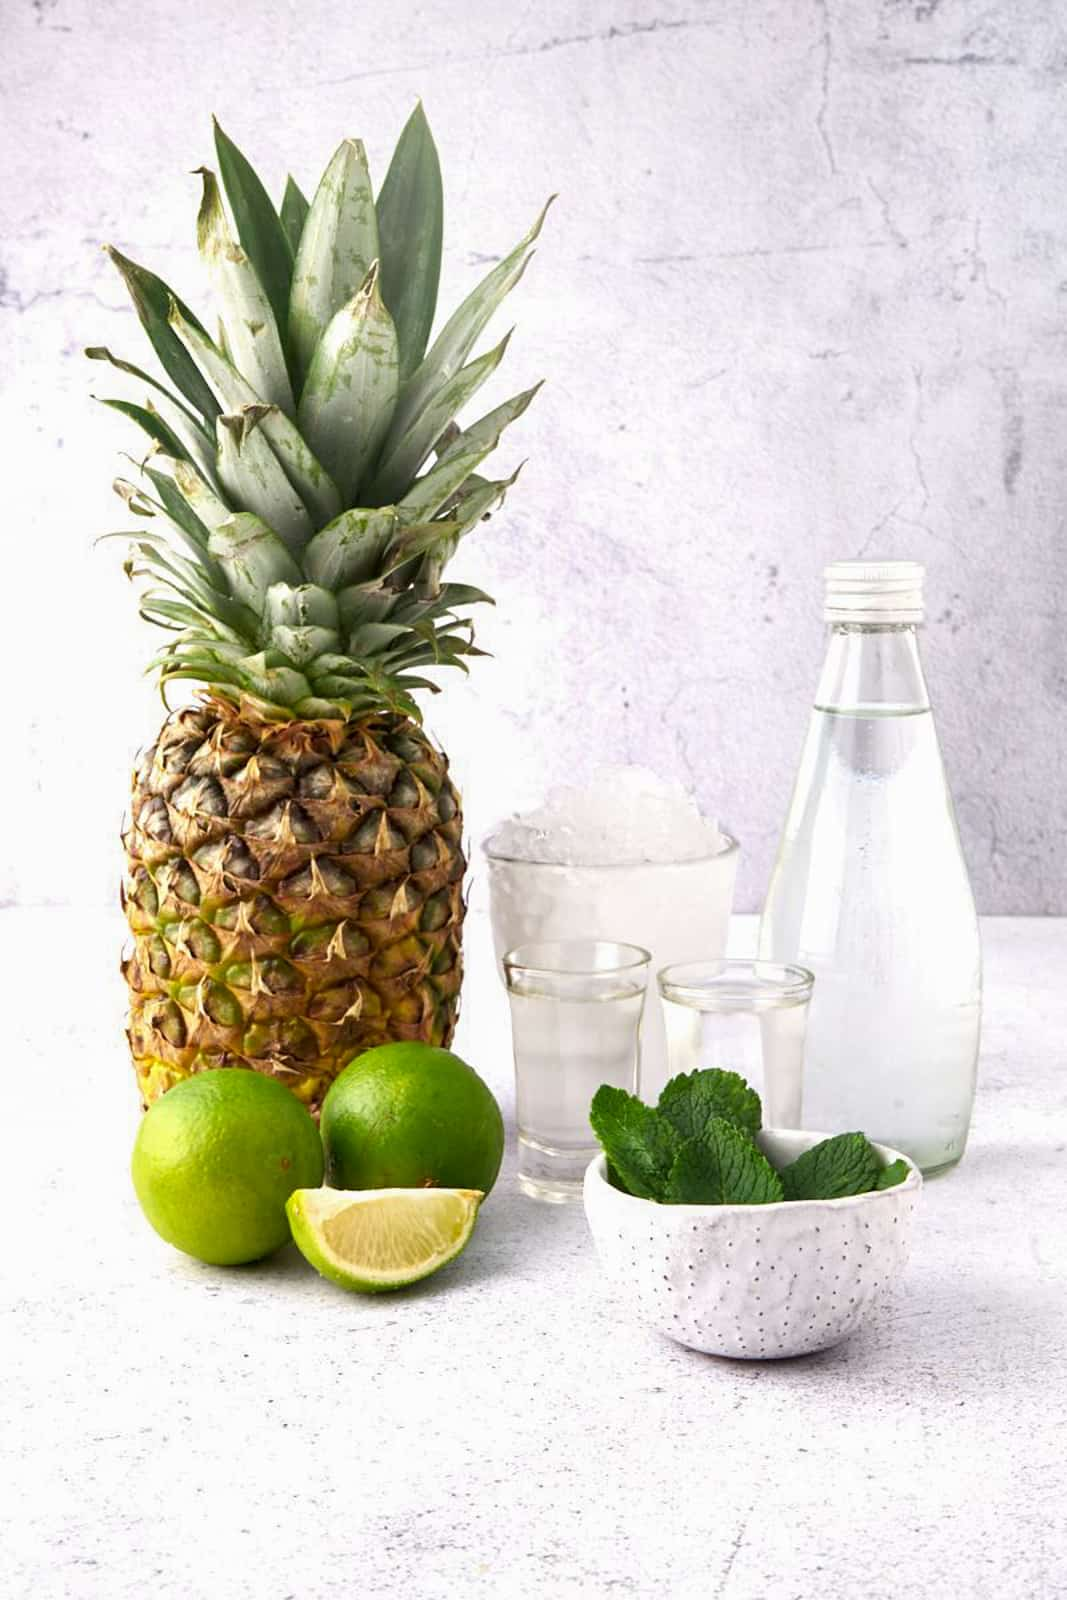 Ingredients needed to make Pineapple Mojitos